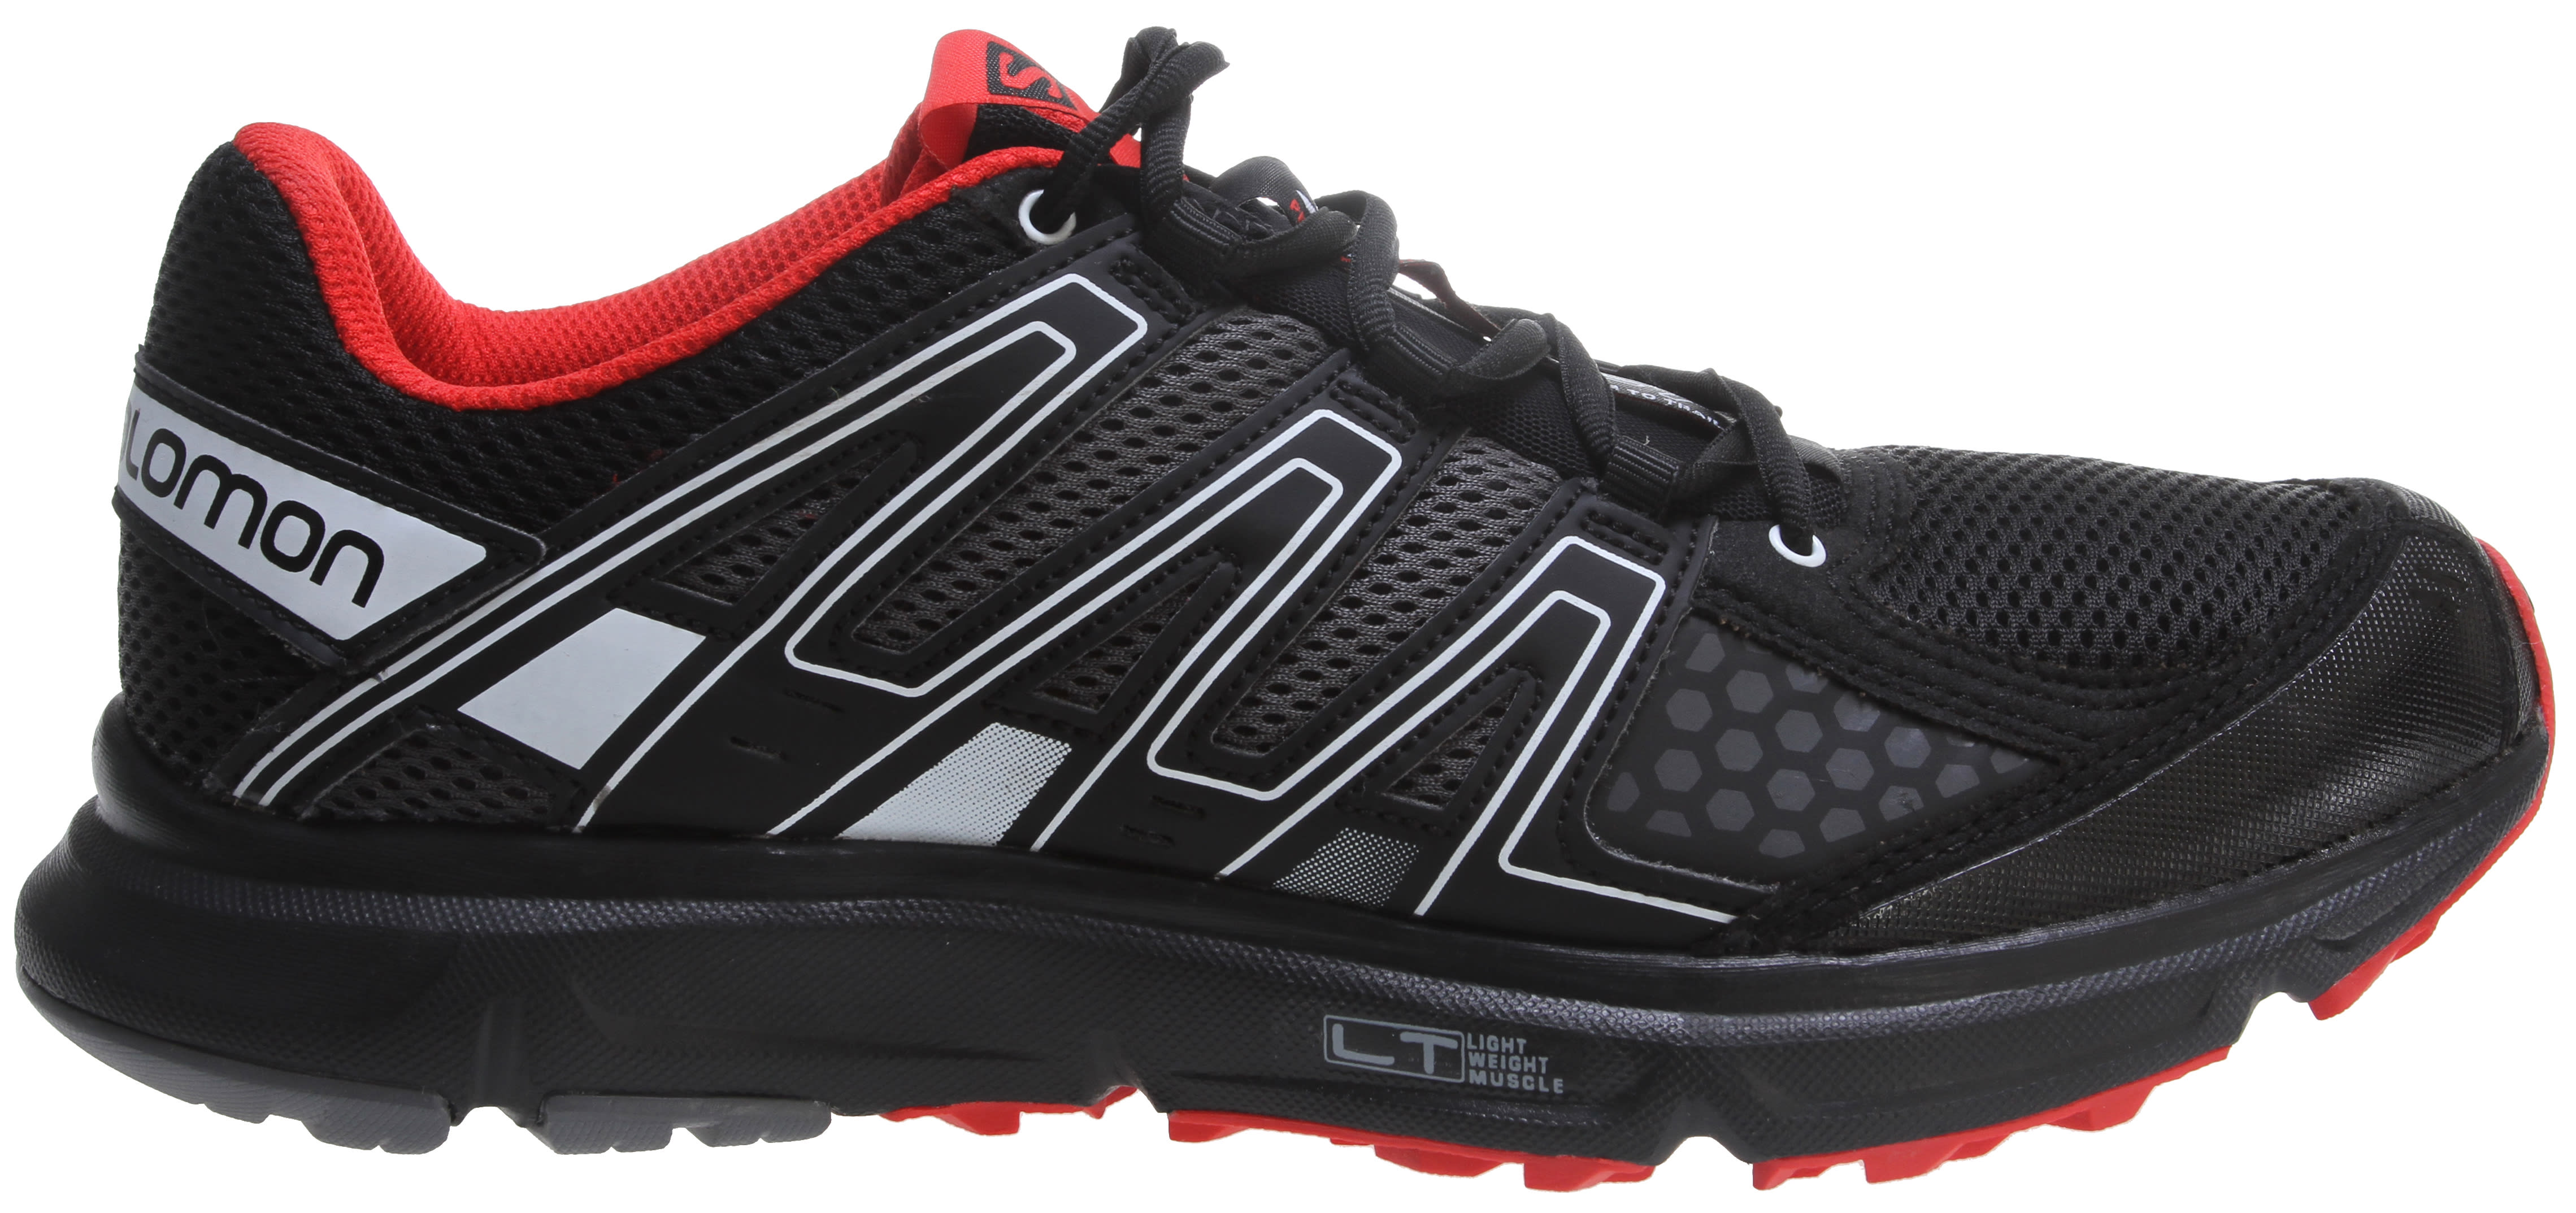 7cb5dbc31d64 Salomon XR Shift Shoes - thumbnail 1